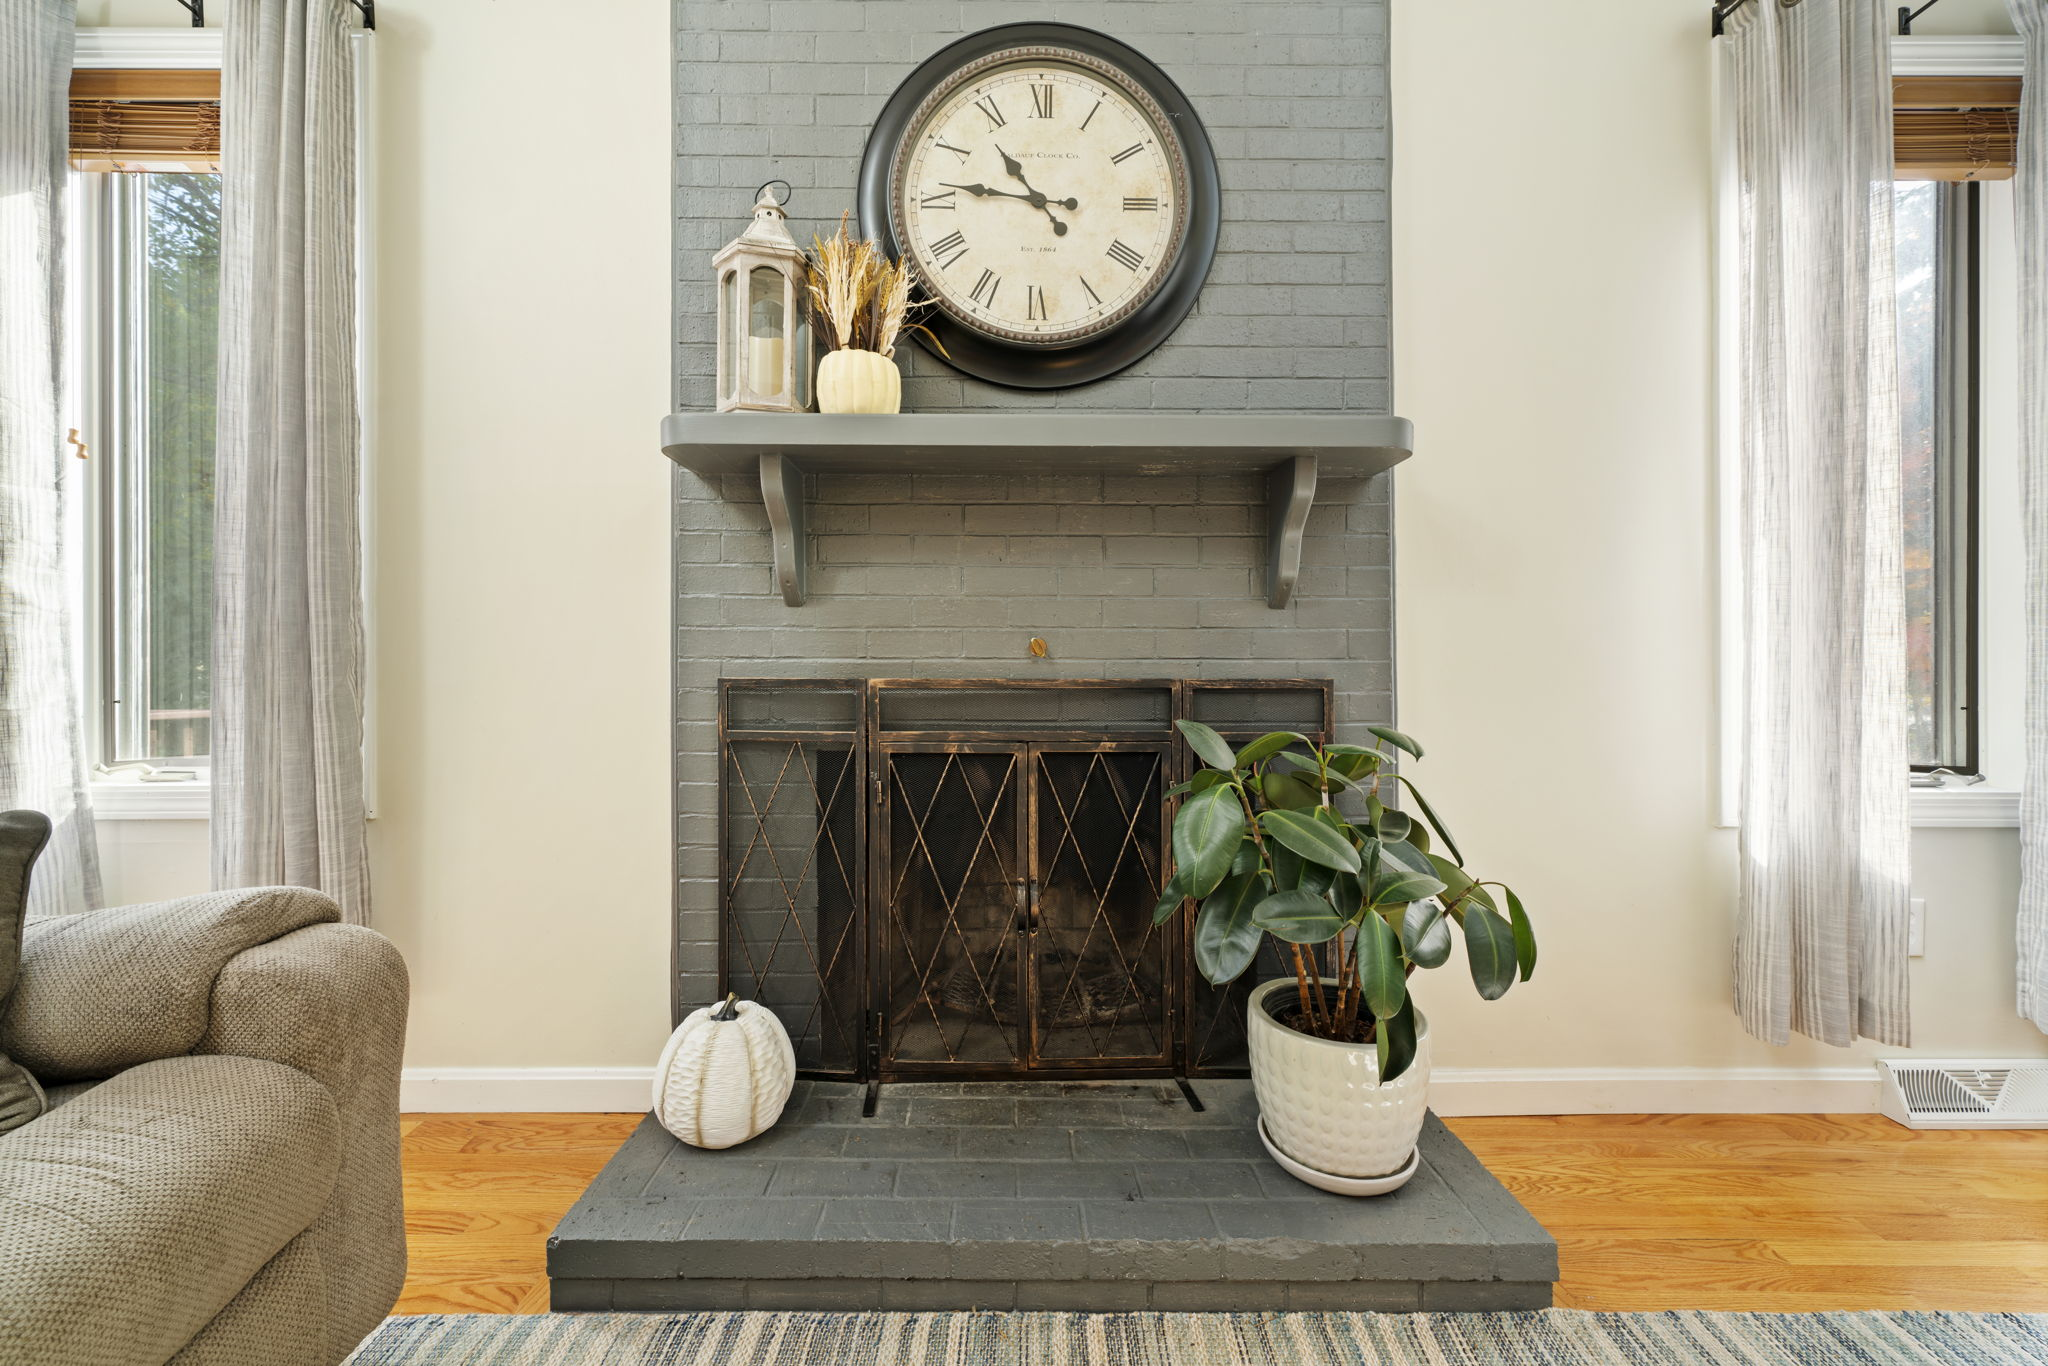 Stunning grey modern fireplace with iron gate and shelving above